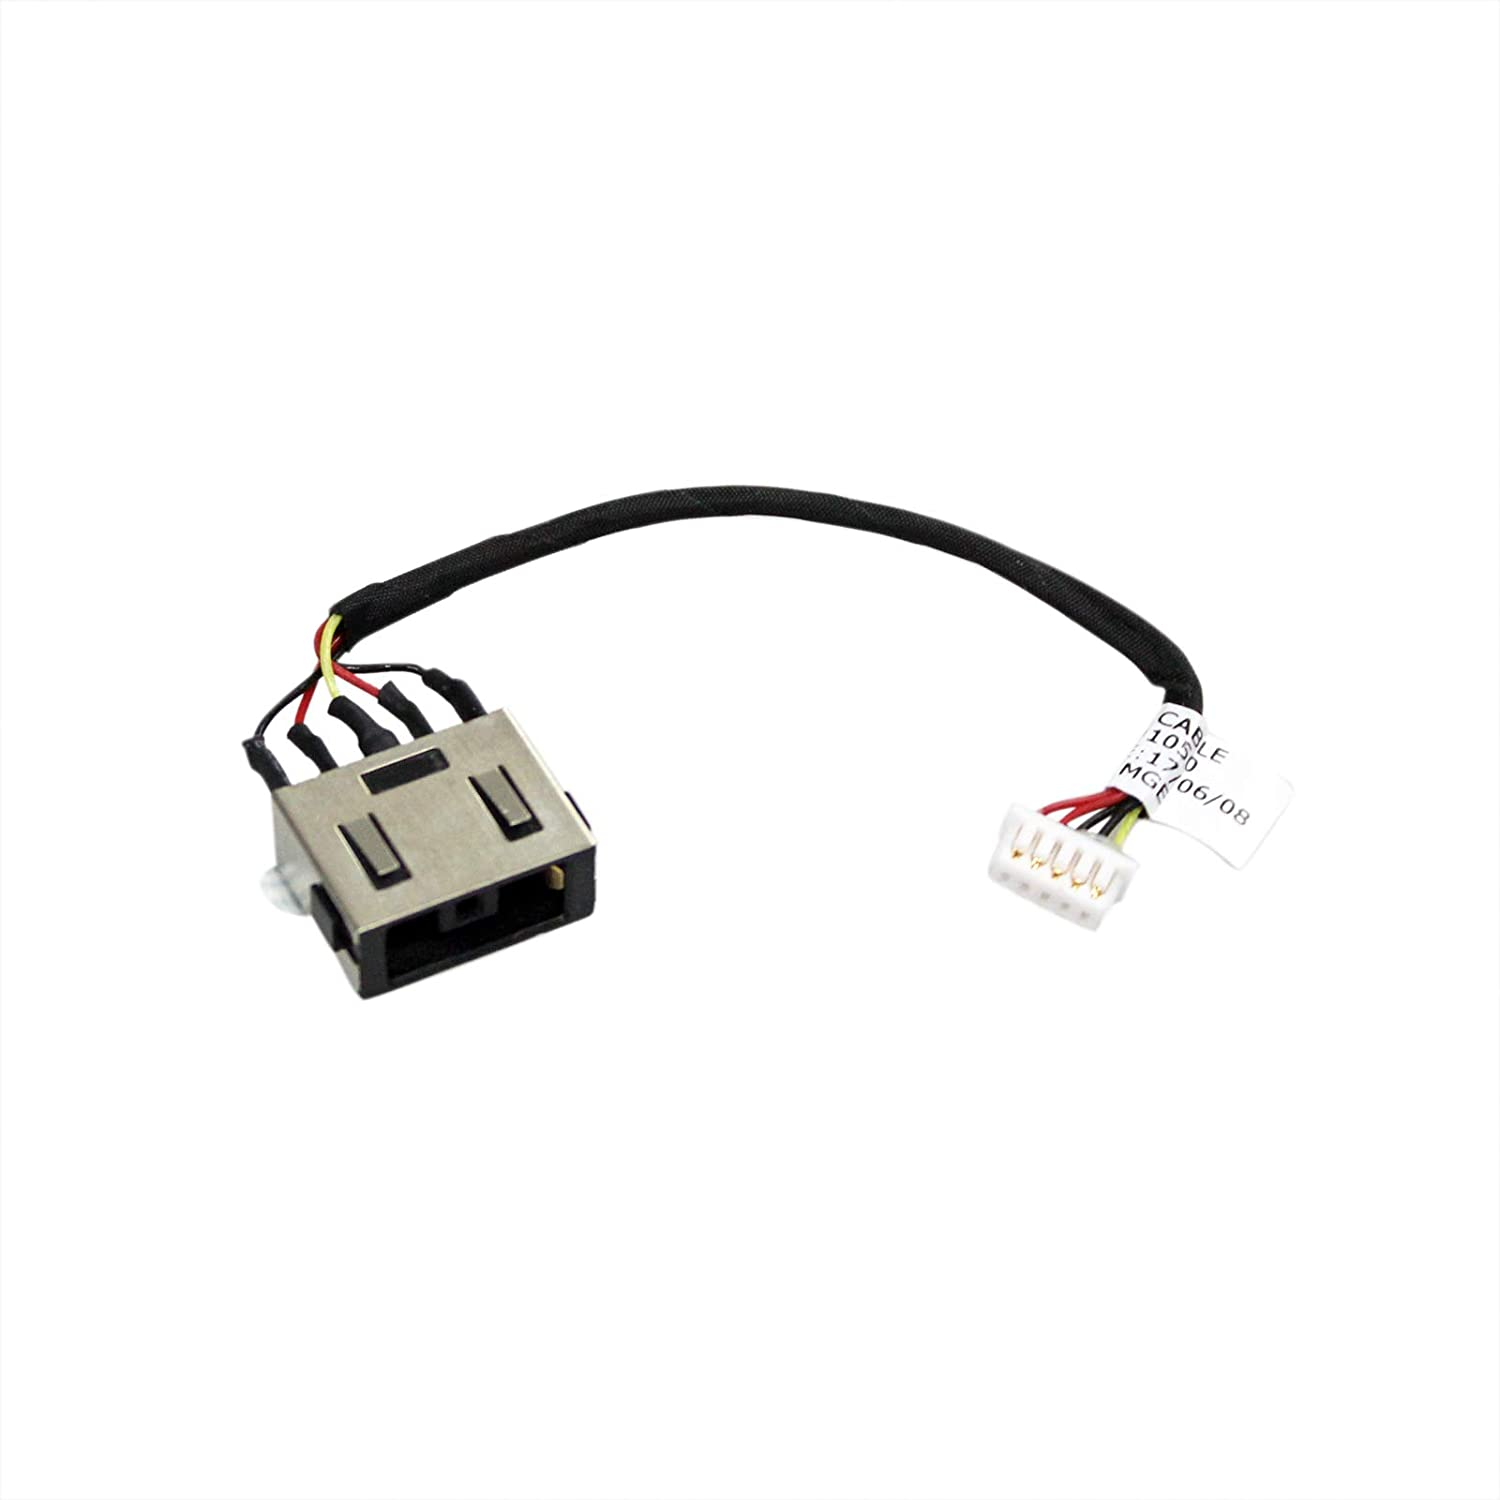 Amazon.com: GinTai DC Power Jack Connector Cable Replacement ...